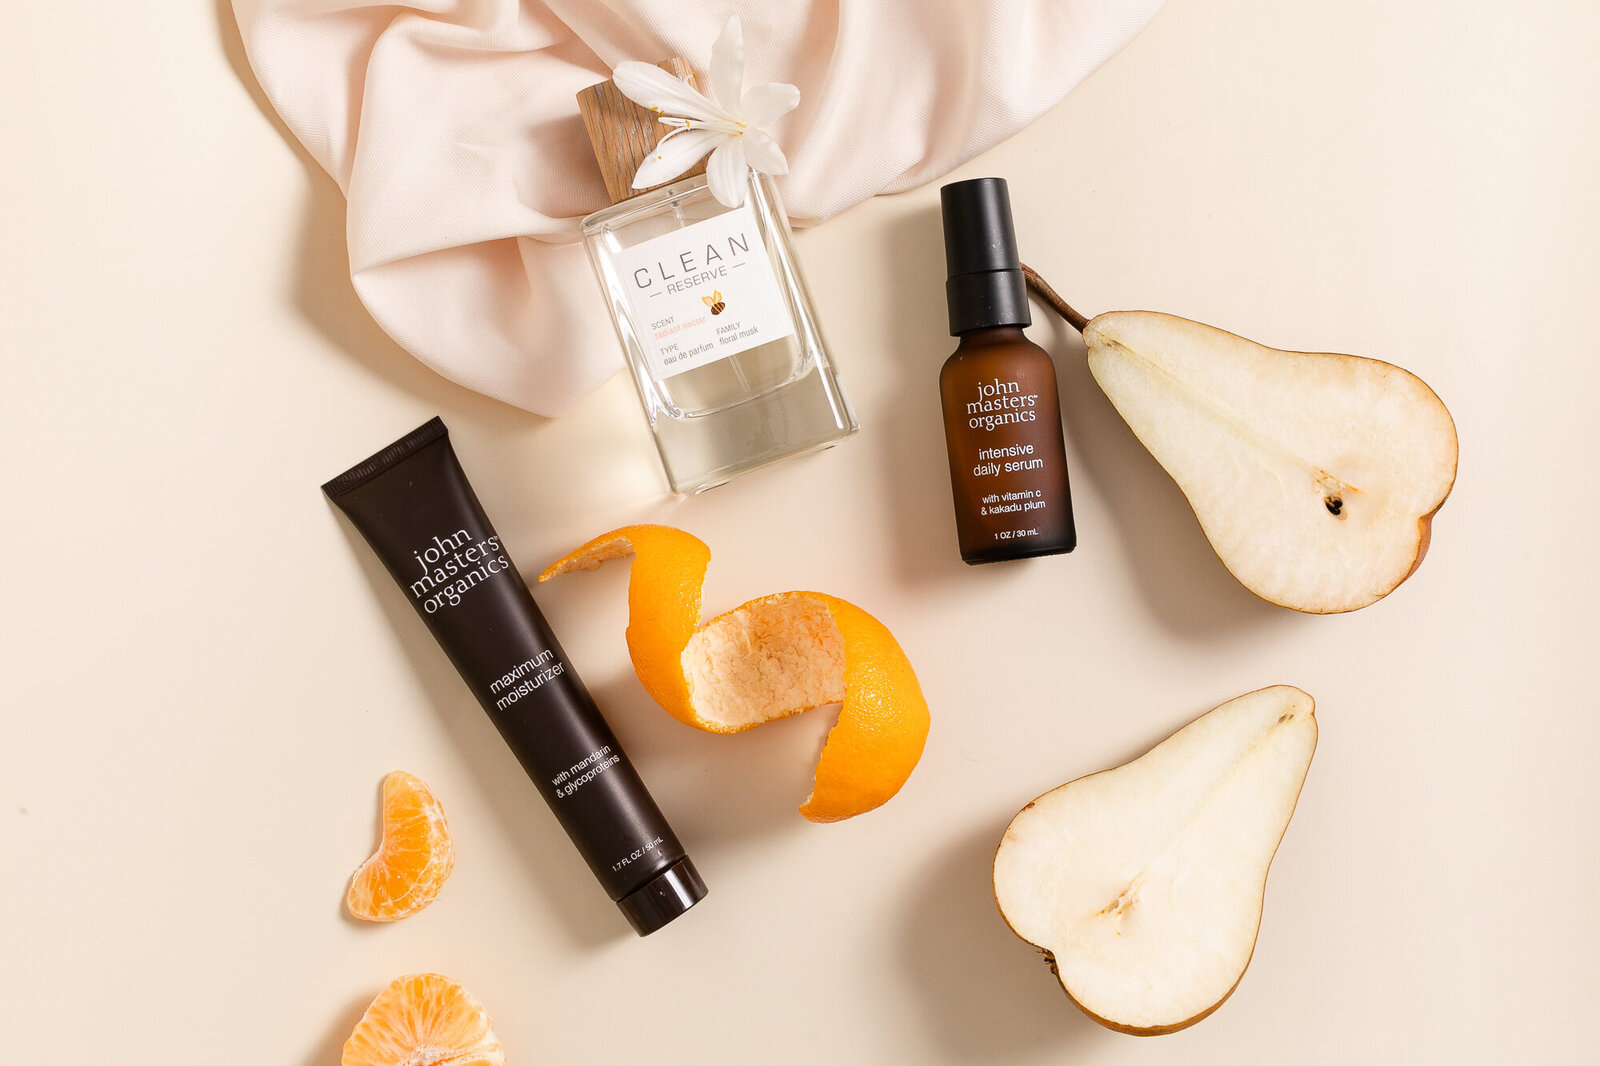 John_Masters_Organics_Clean_Beauty_Collab-2